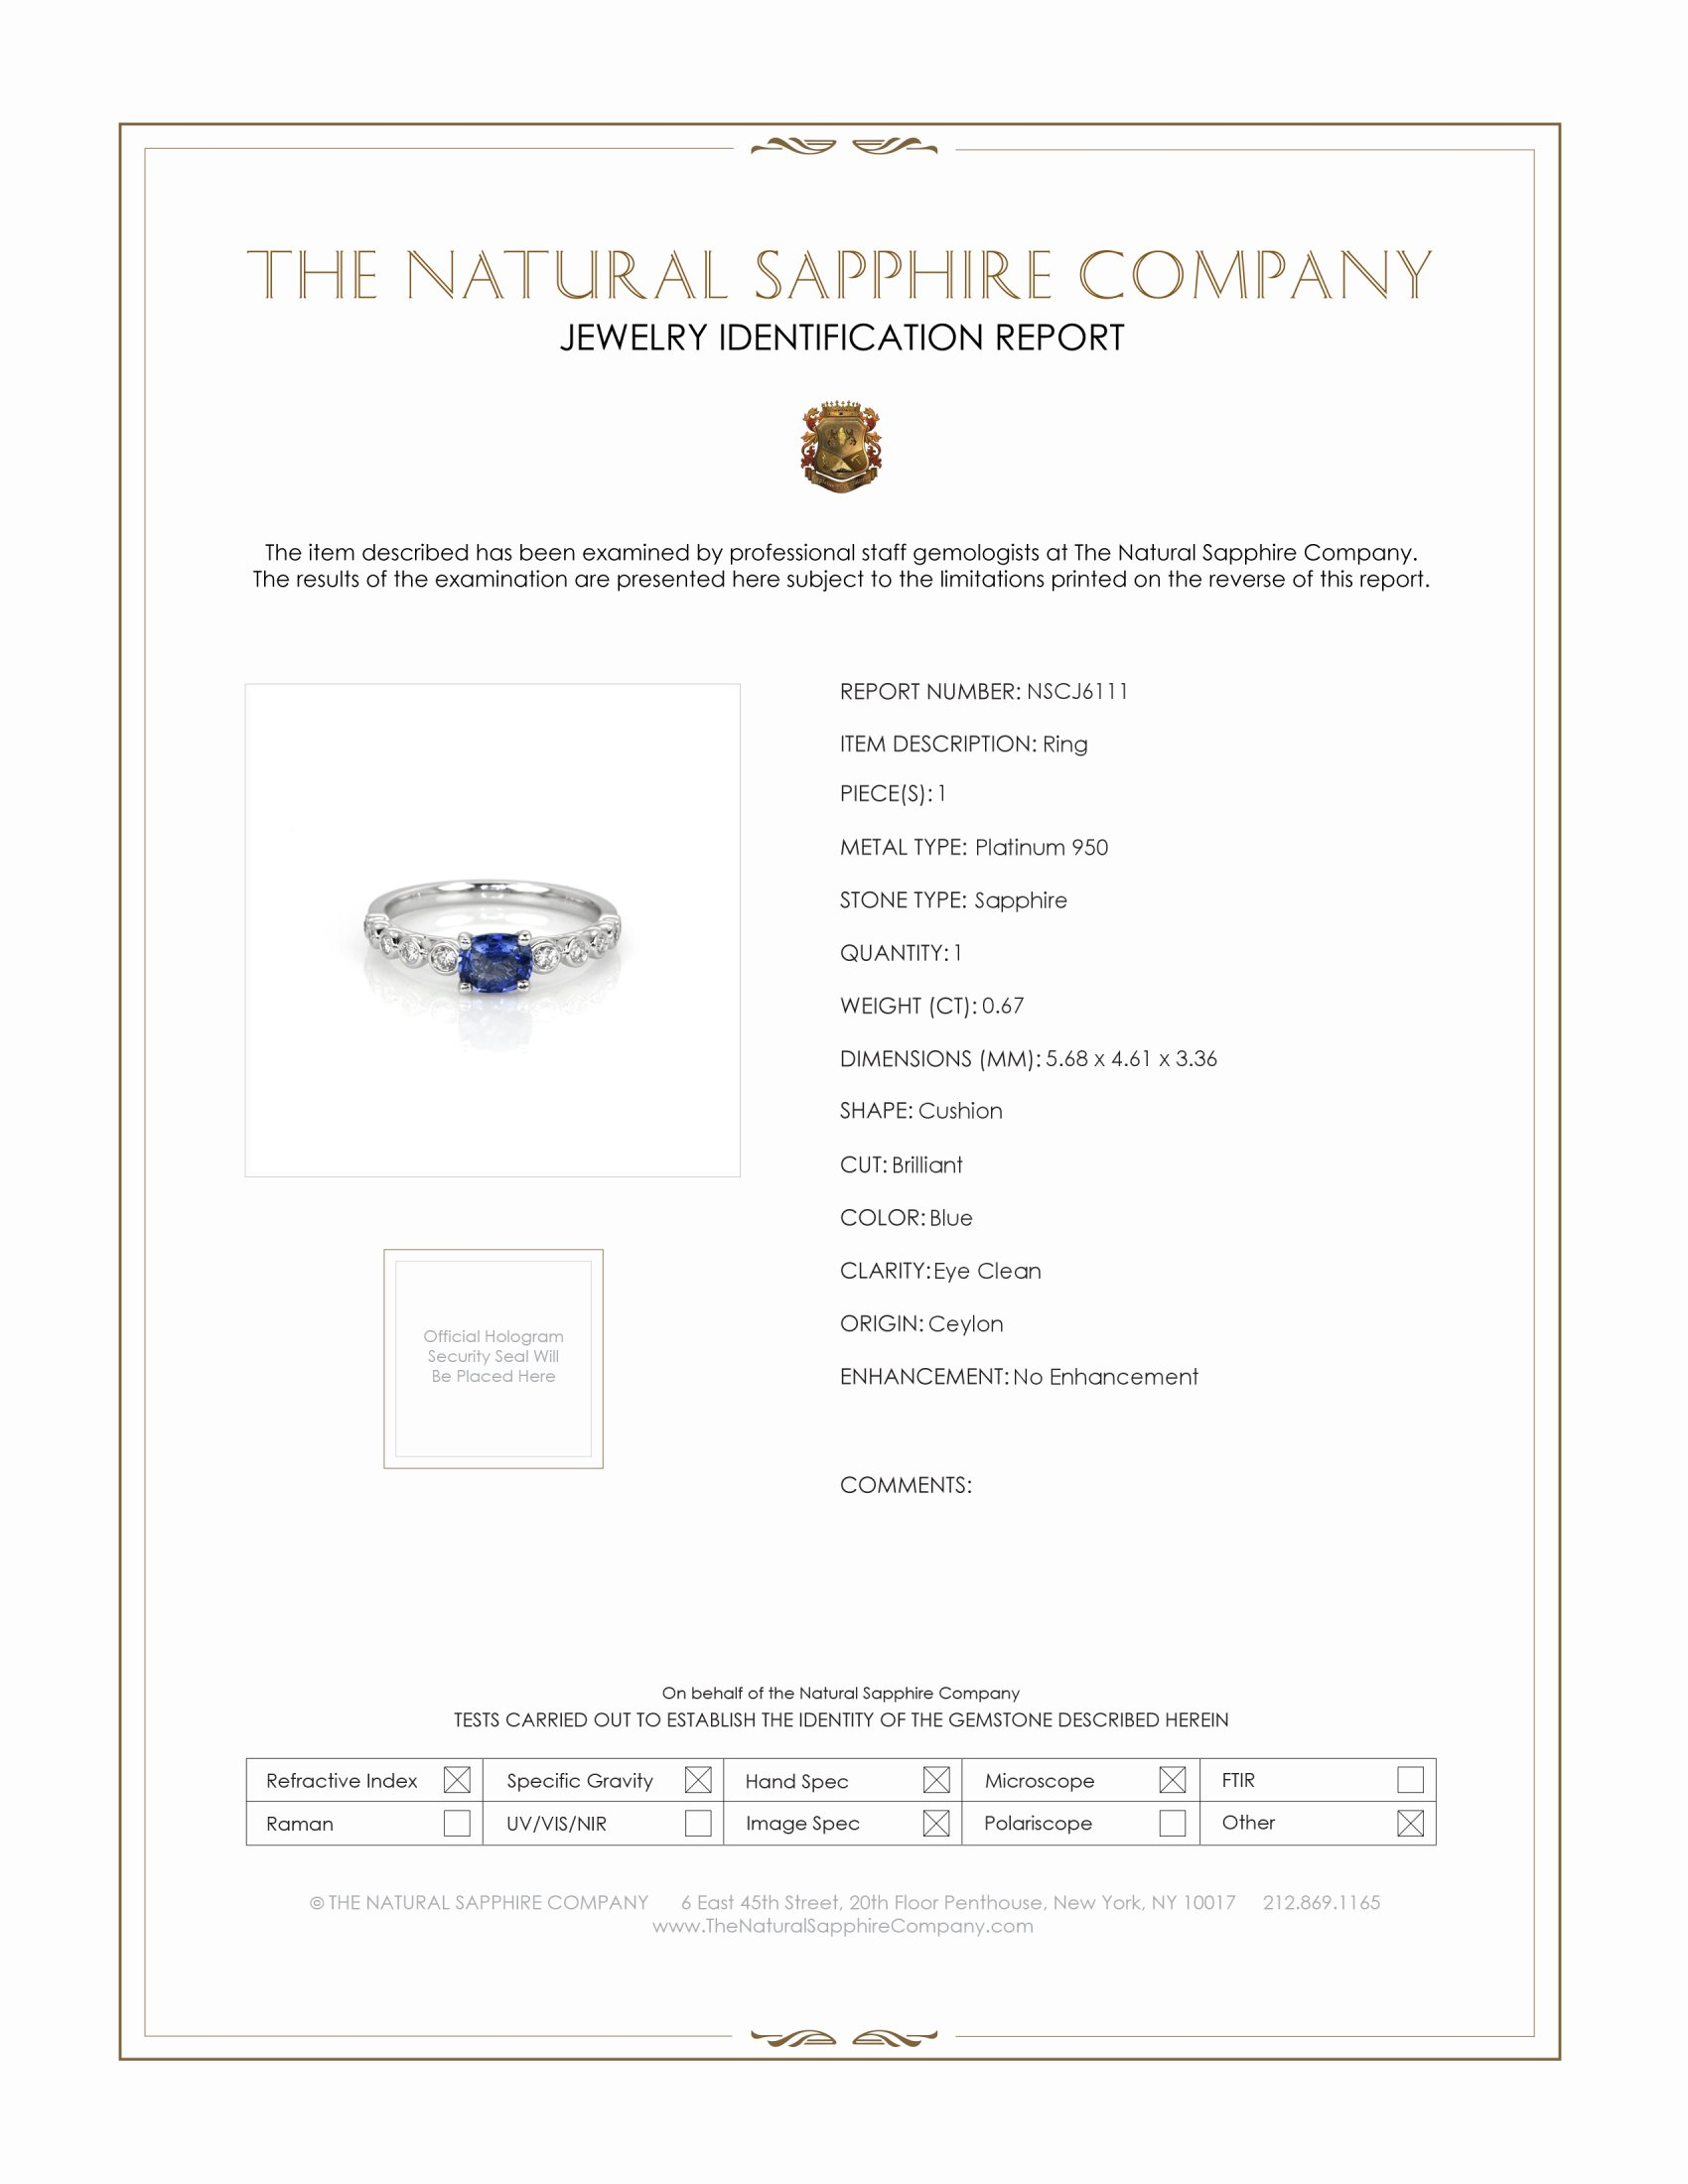 0.67ct Blue Sapphire Ring Certification